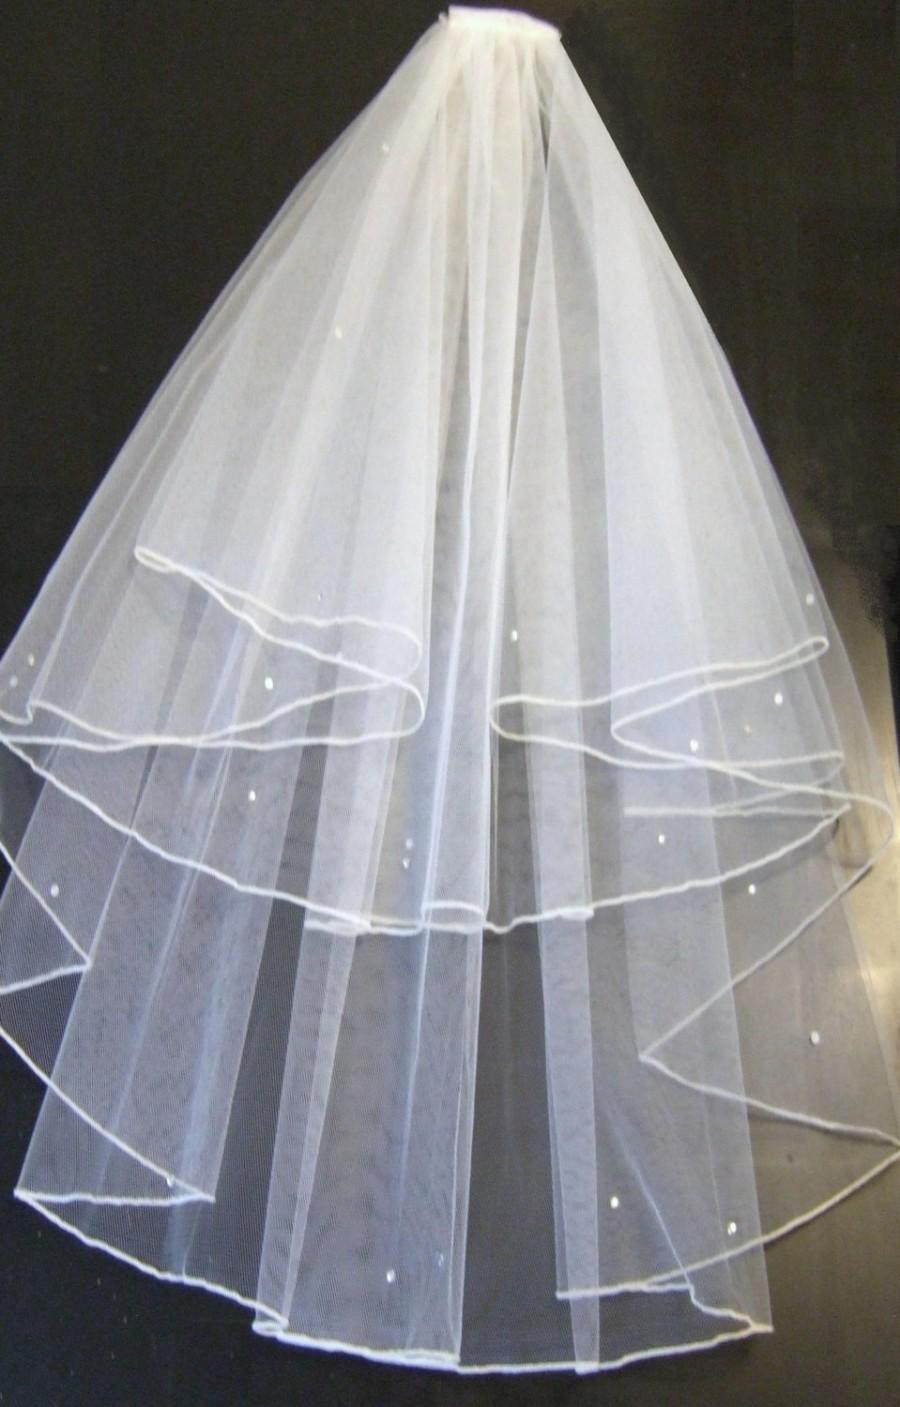 زفاف - PENCIL EDGE veil, Bridal Veil ,WHITE 2 tier veil,Wedding veil,Communion Veil, Hen night veil.Pencil edge veil  with detachable comb & Loops.